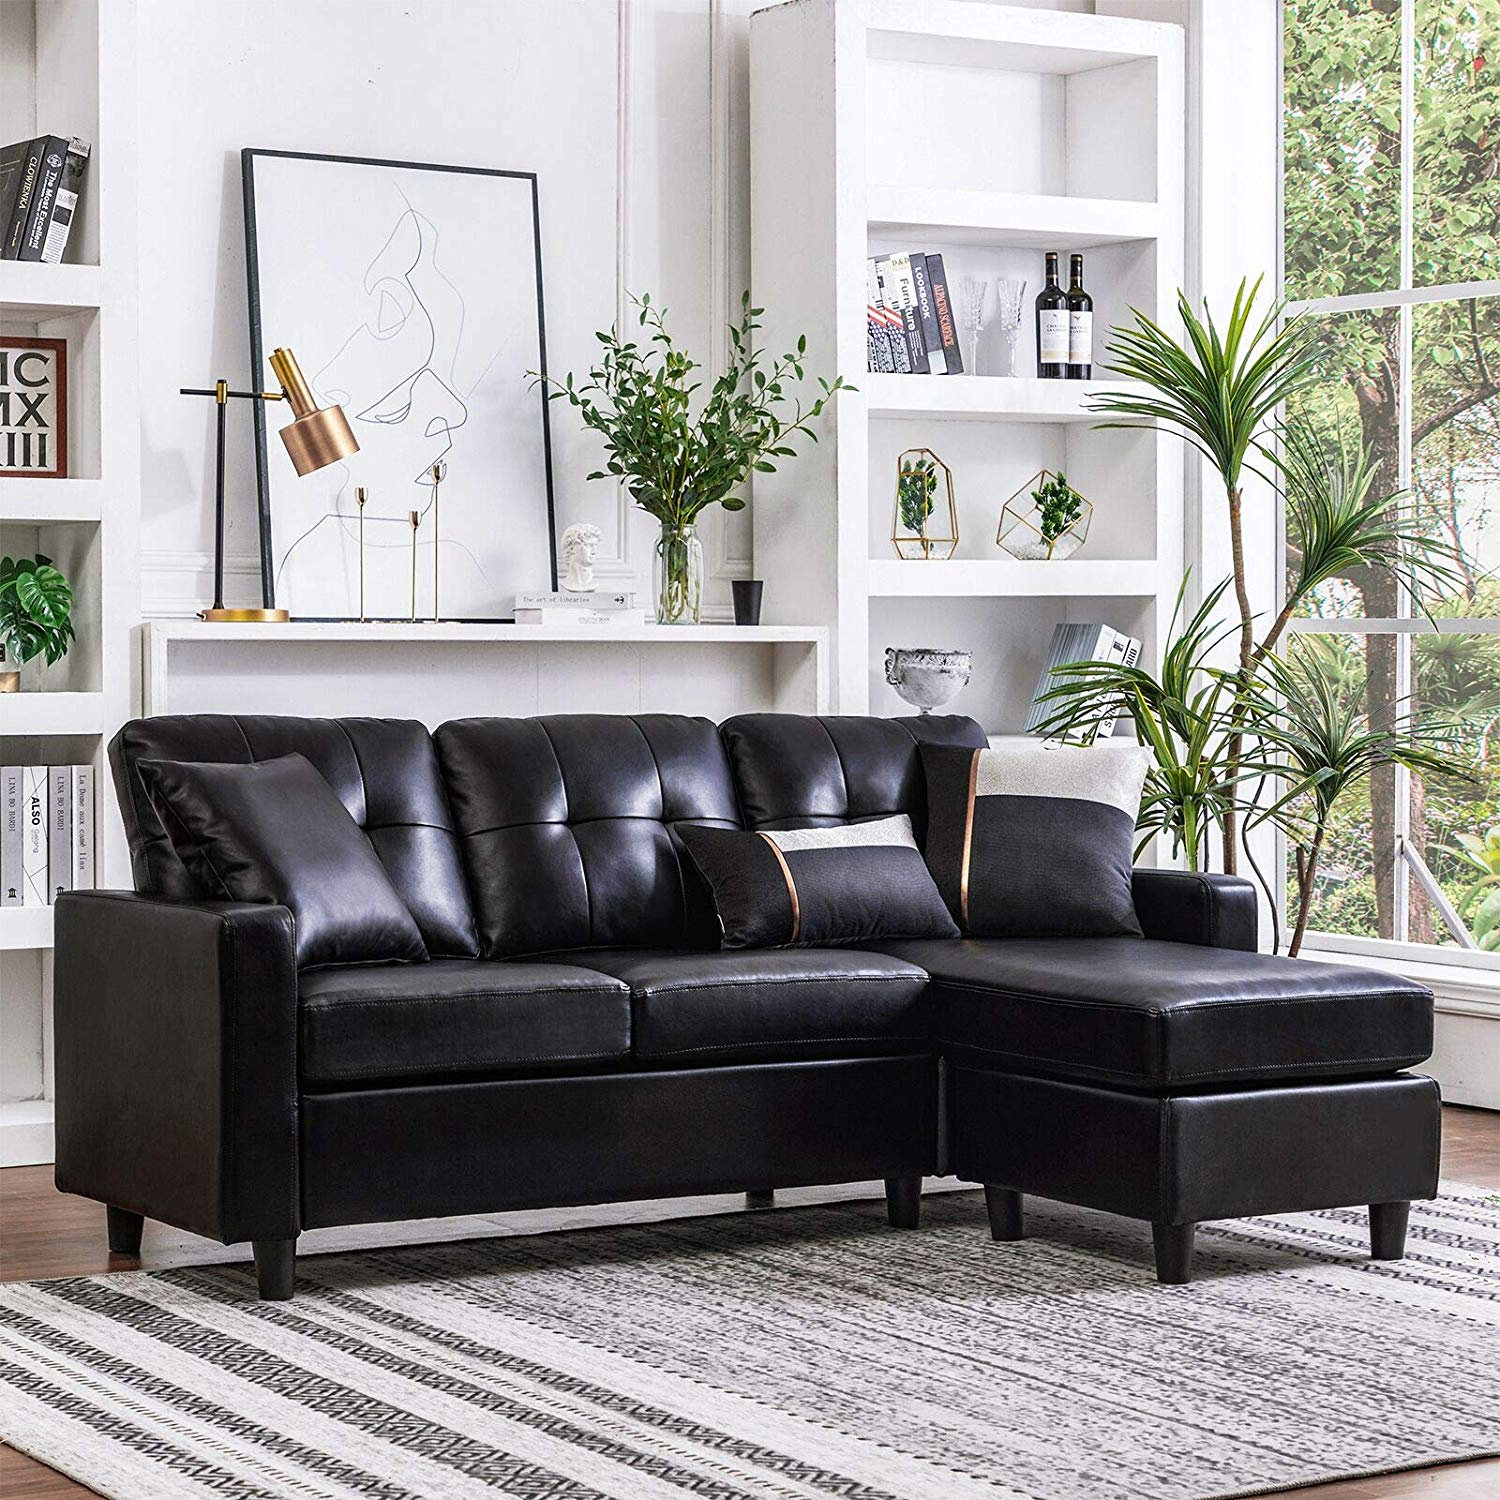 Honbay Sectional Leather Couch L Shape